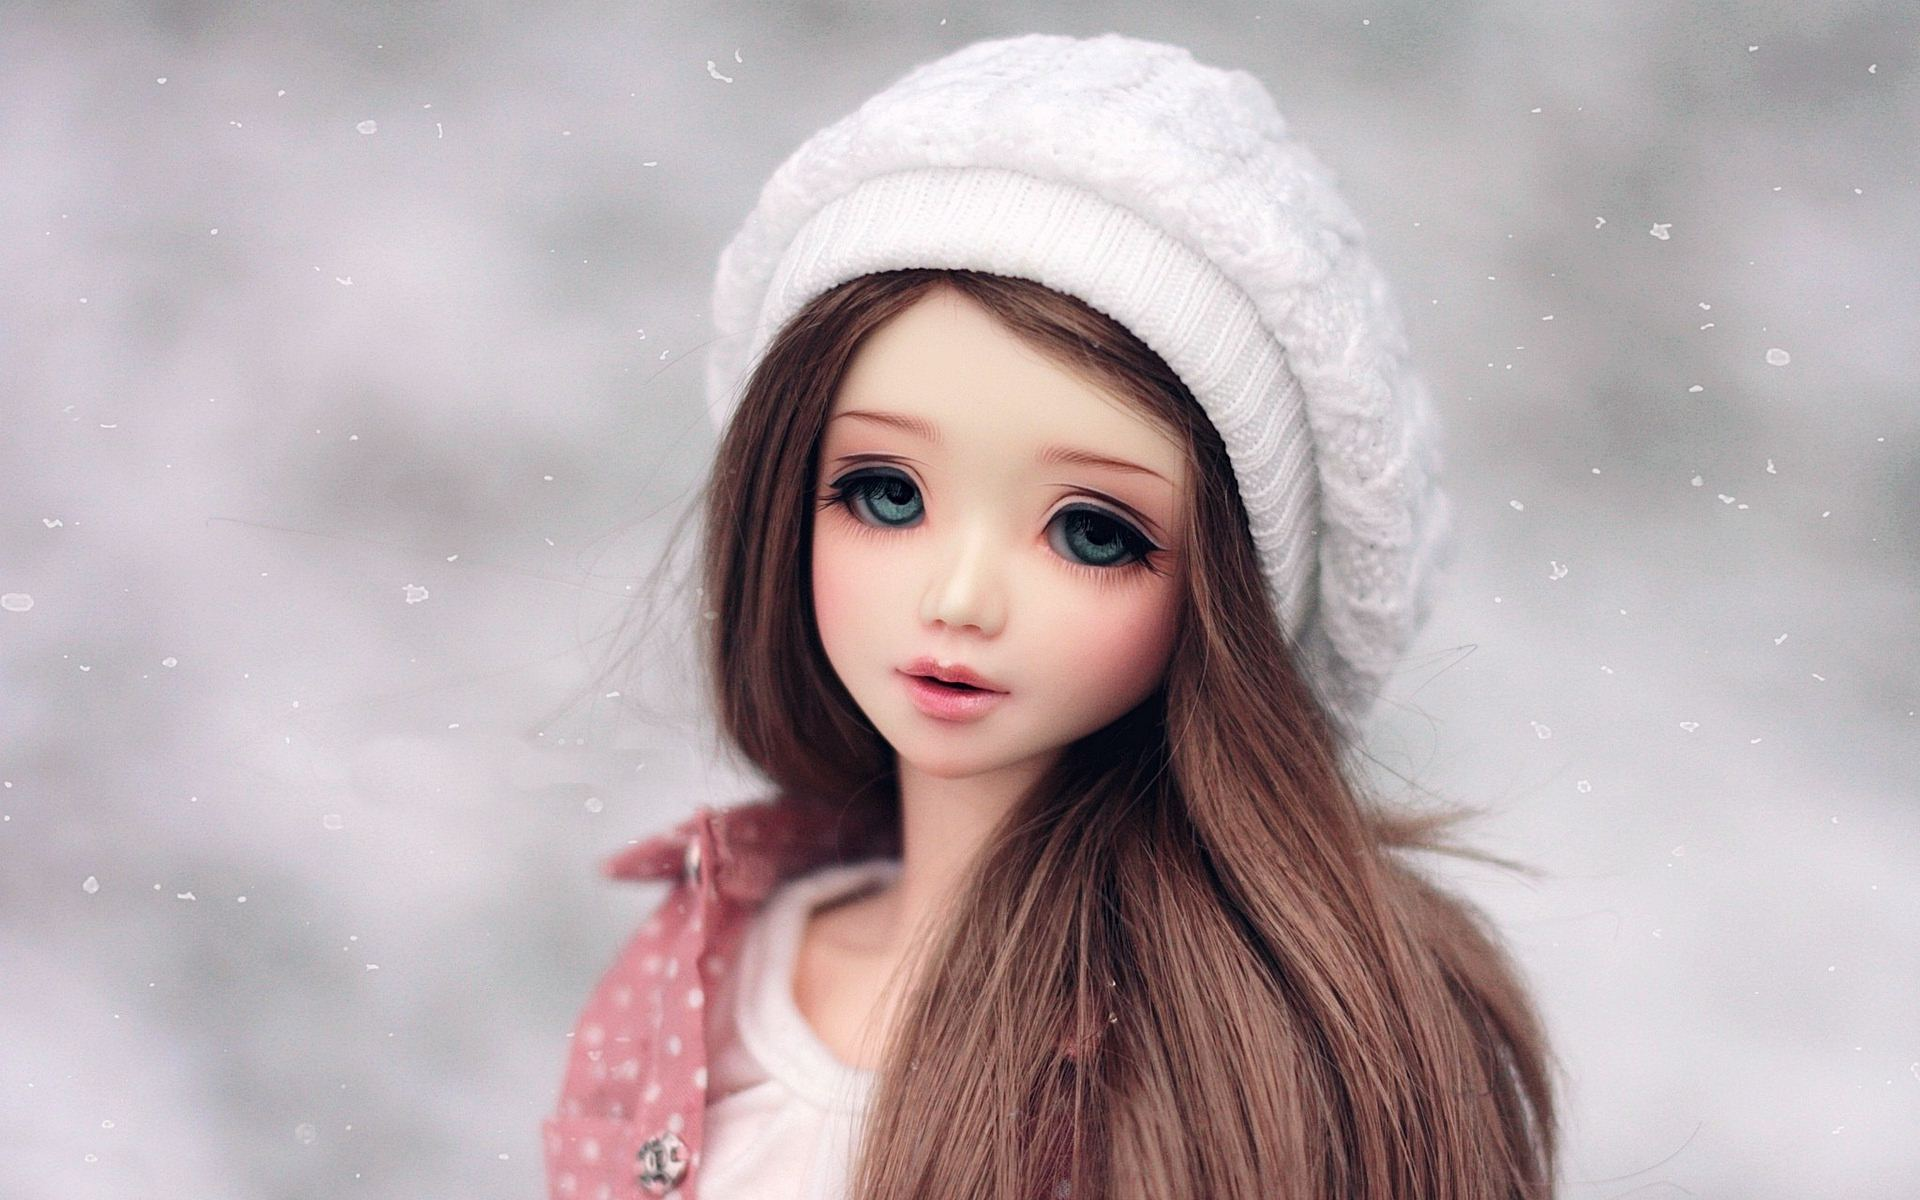 dolls of different wallpaper - photo #46